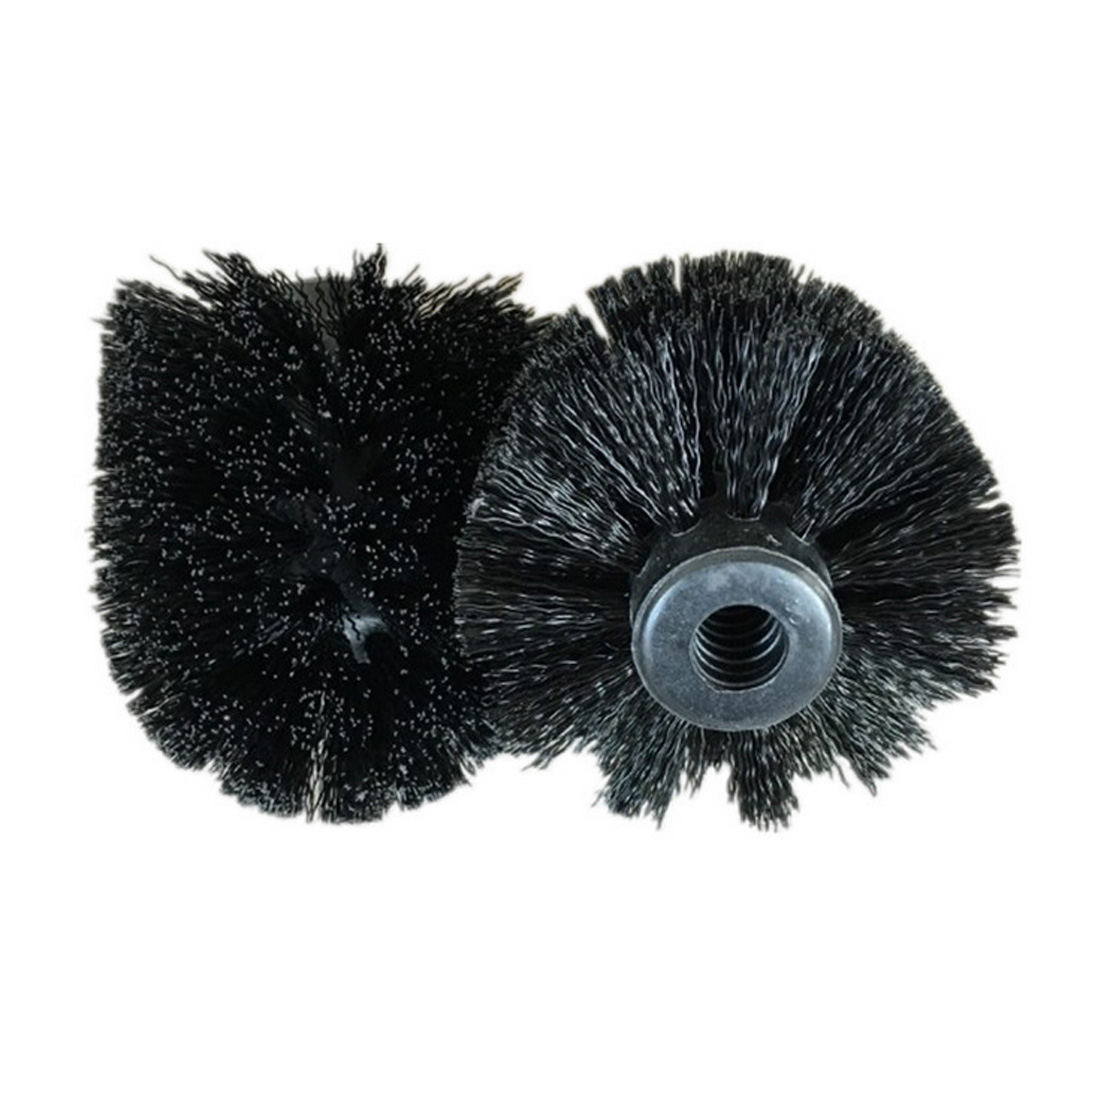 Toilet Brush Head Replacement Cleaning Brush Head Universal Holder For Toilet Bathroom WC Clean Tool Accessory